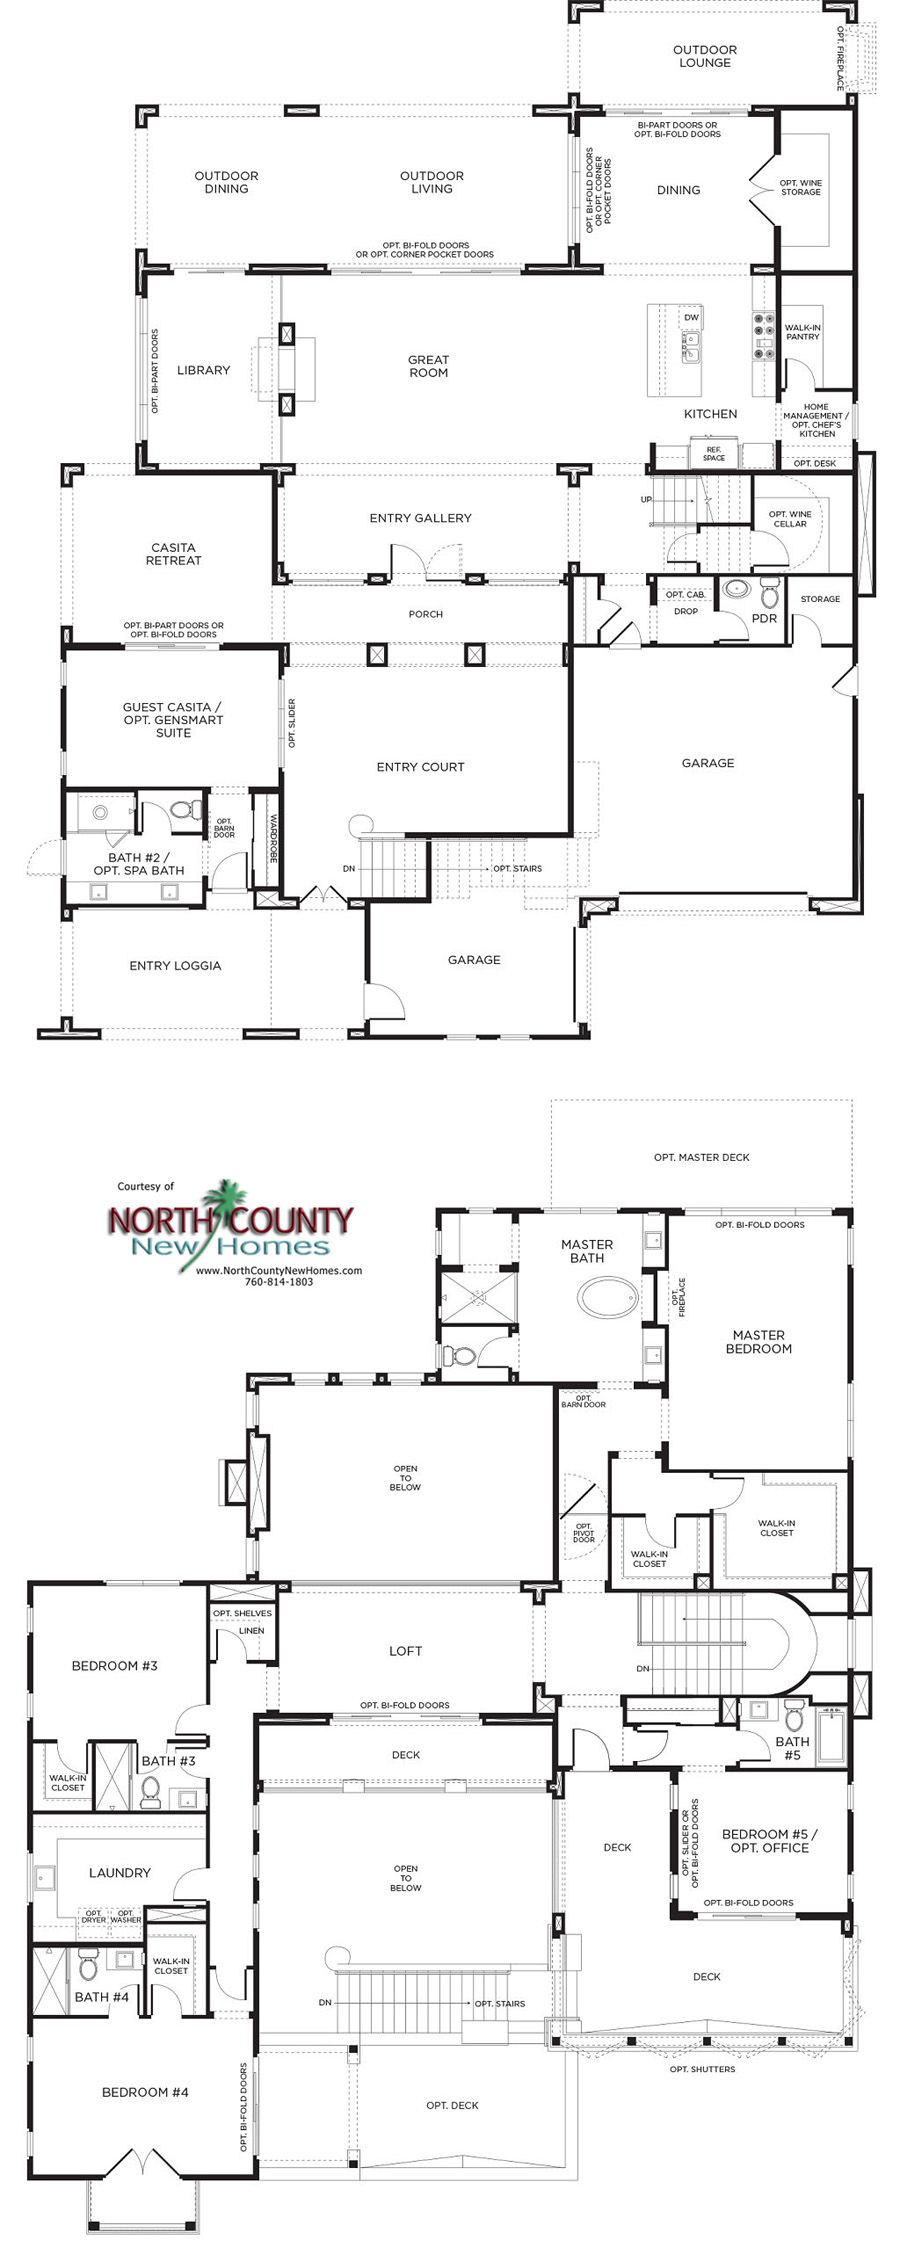 Artesana Floor Plans New Homes Pacific Highands Ranch How To Plan Floor Plans Dream House Plans